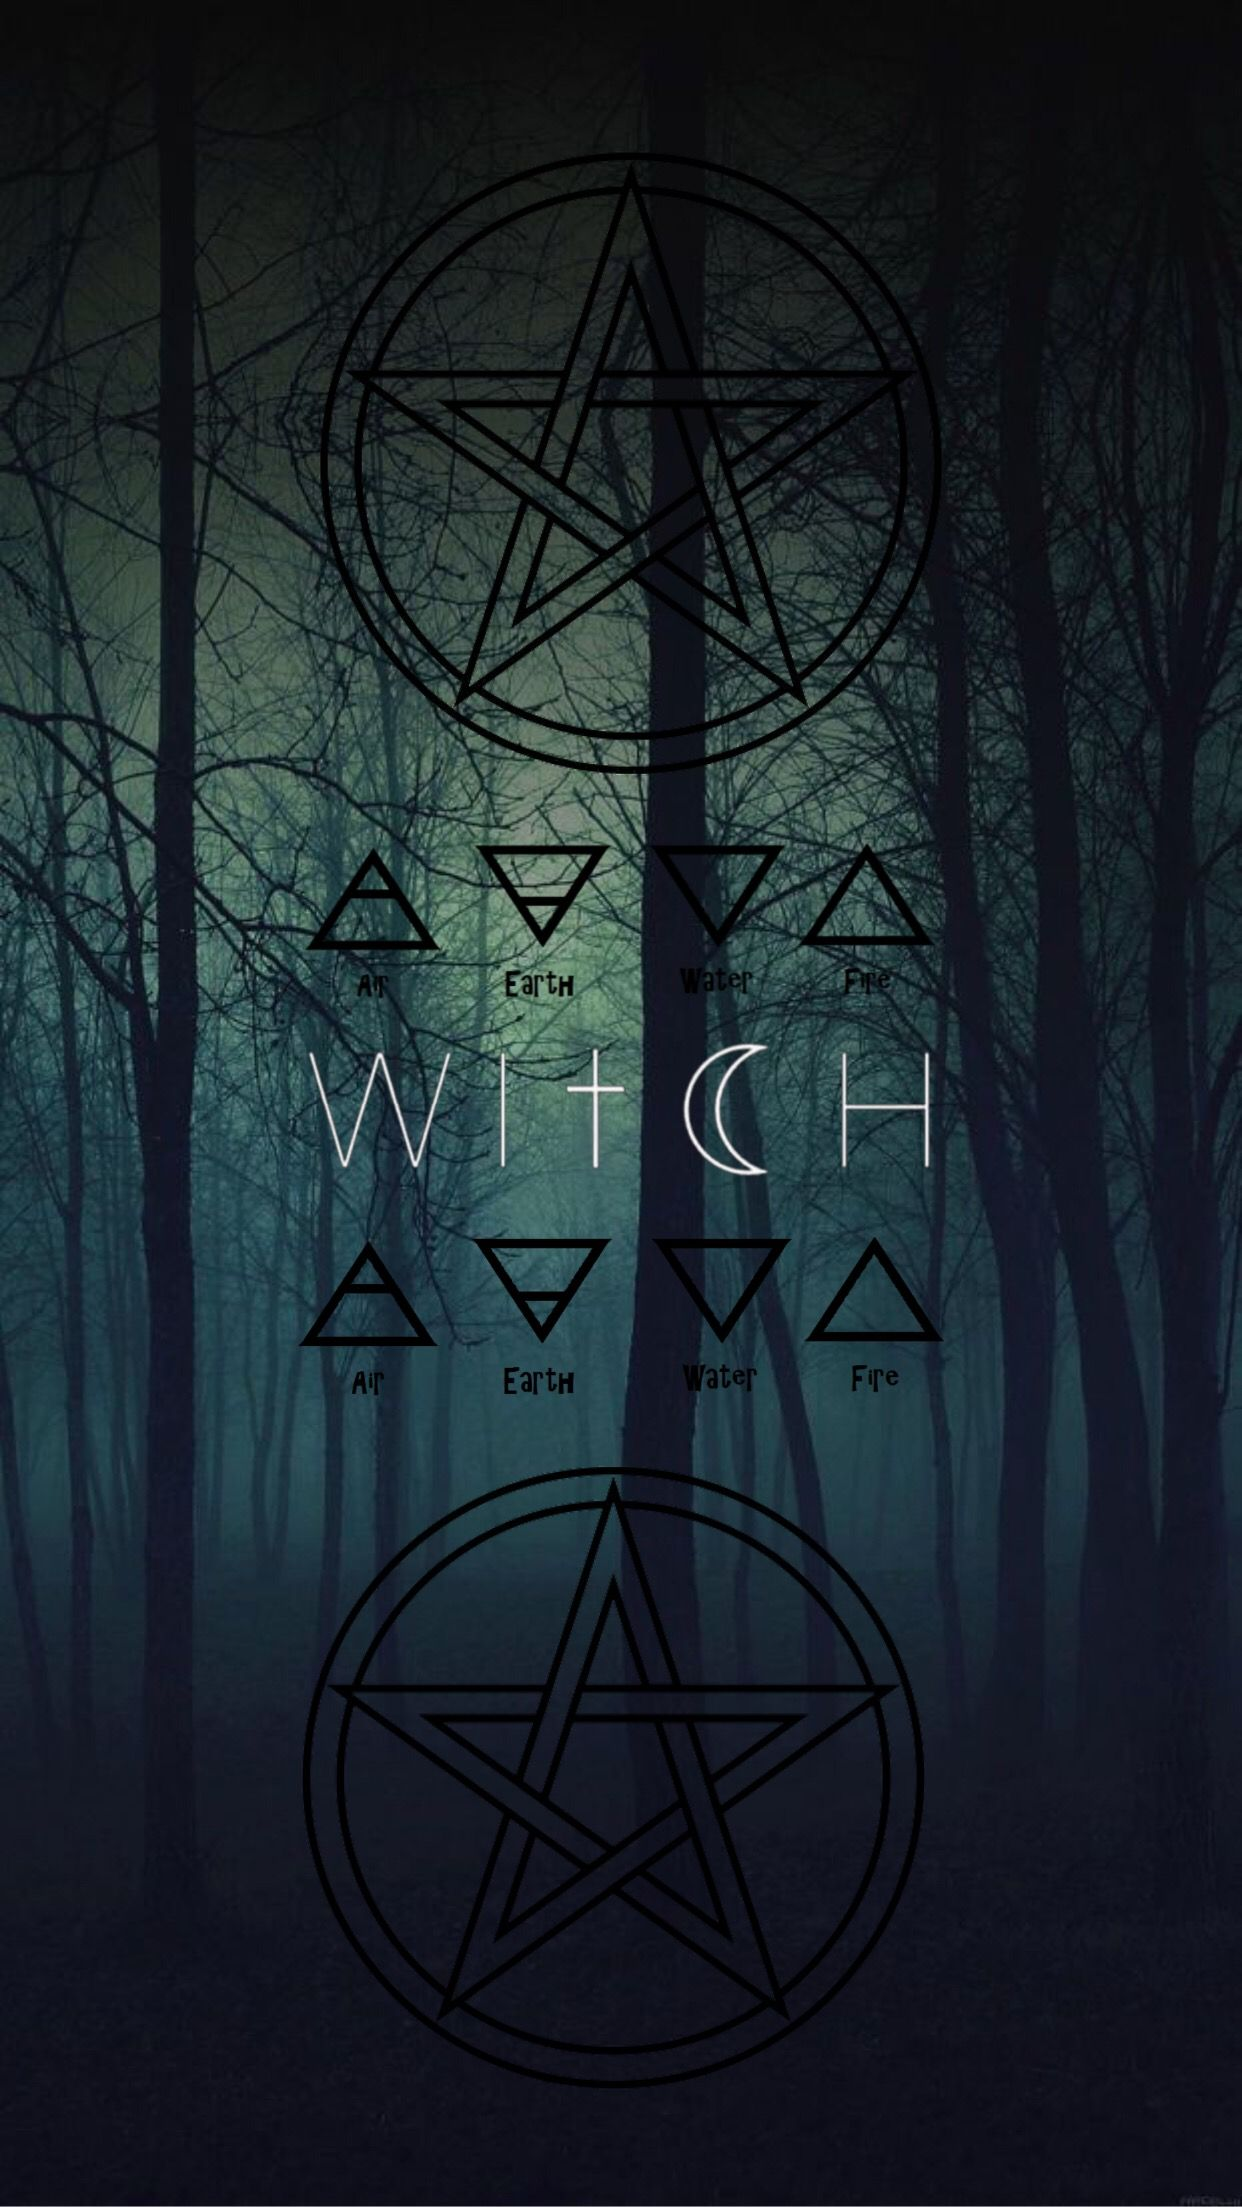 Witch Black Version Free Smartphone Wallpaper By Malabee Witch Wallpaper Witchy Wallpaper Wiccan Wallpaper